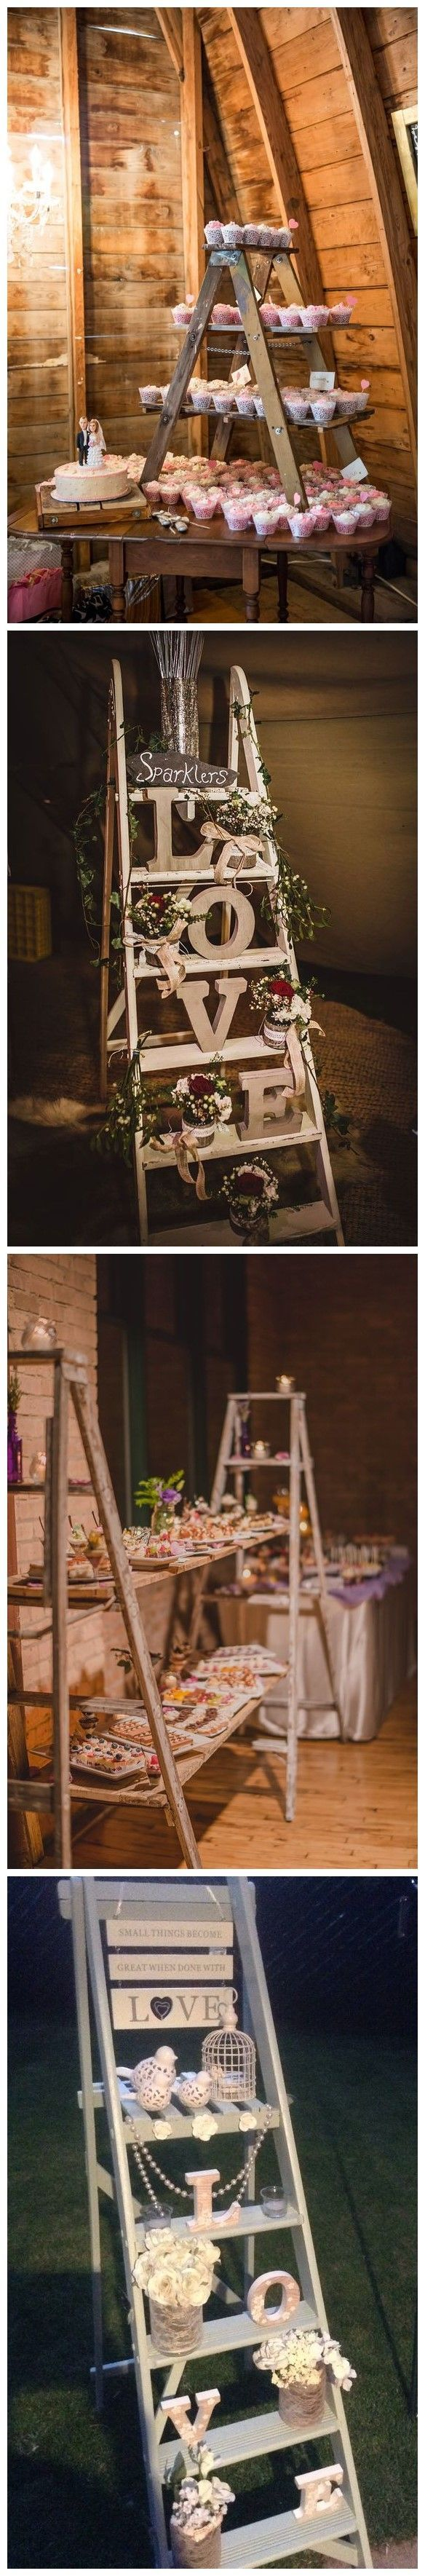 Wedding decorations country   Rustic Country Wedding Decoration Ideas with Ladders  Rustic